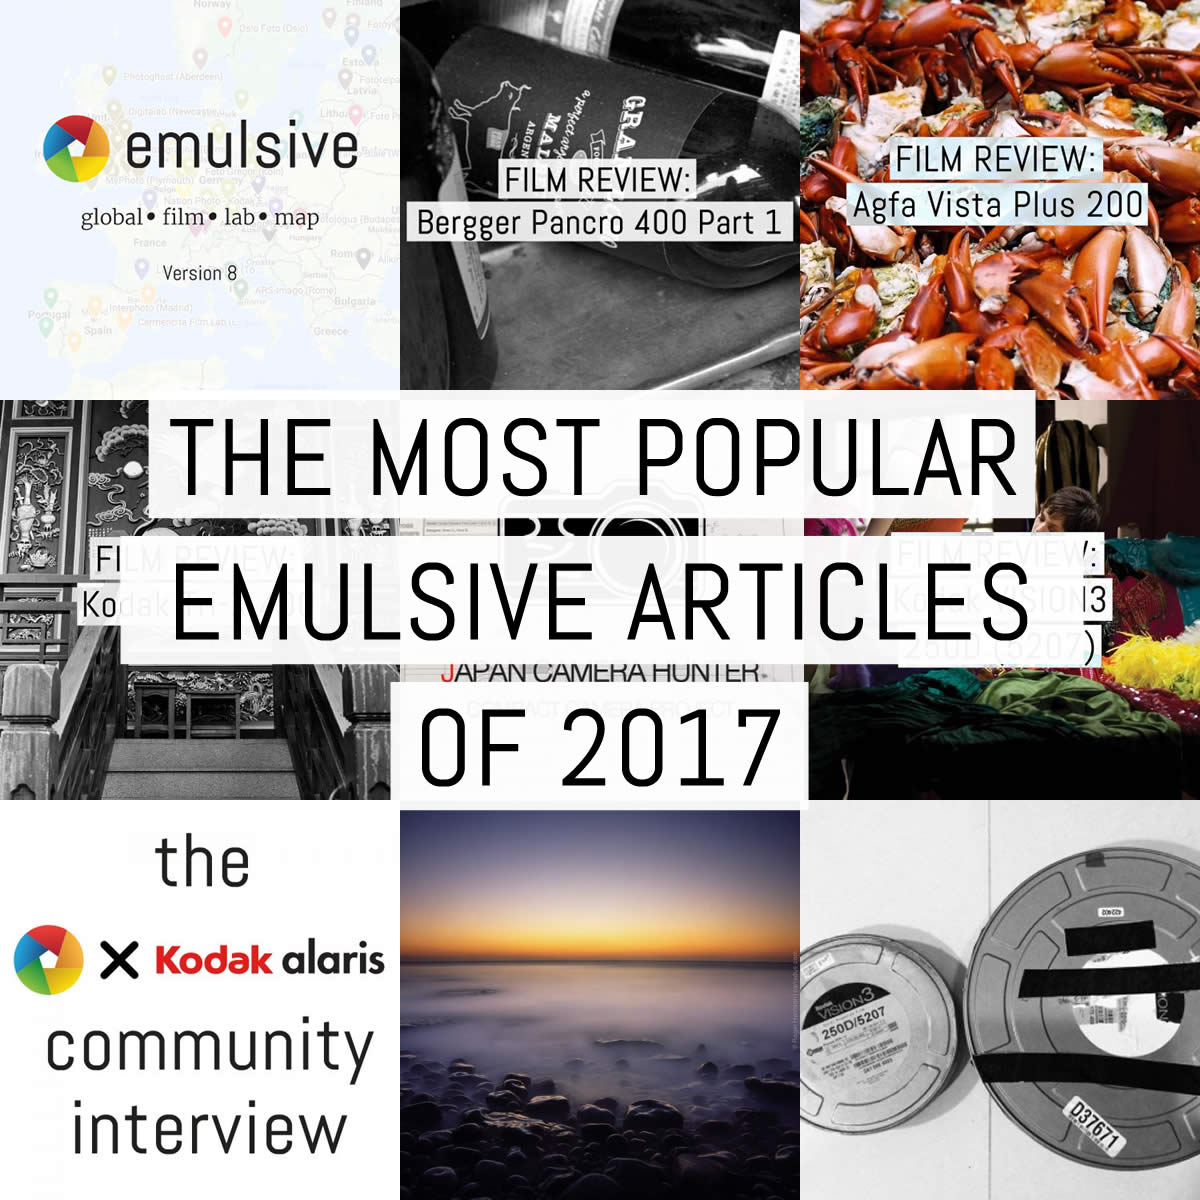 EMULSIVE's most popular articles of 2017